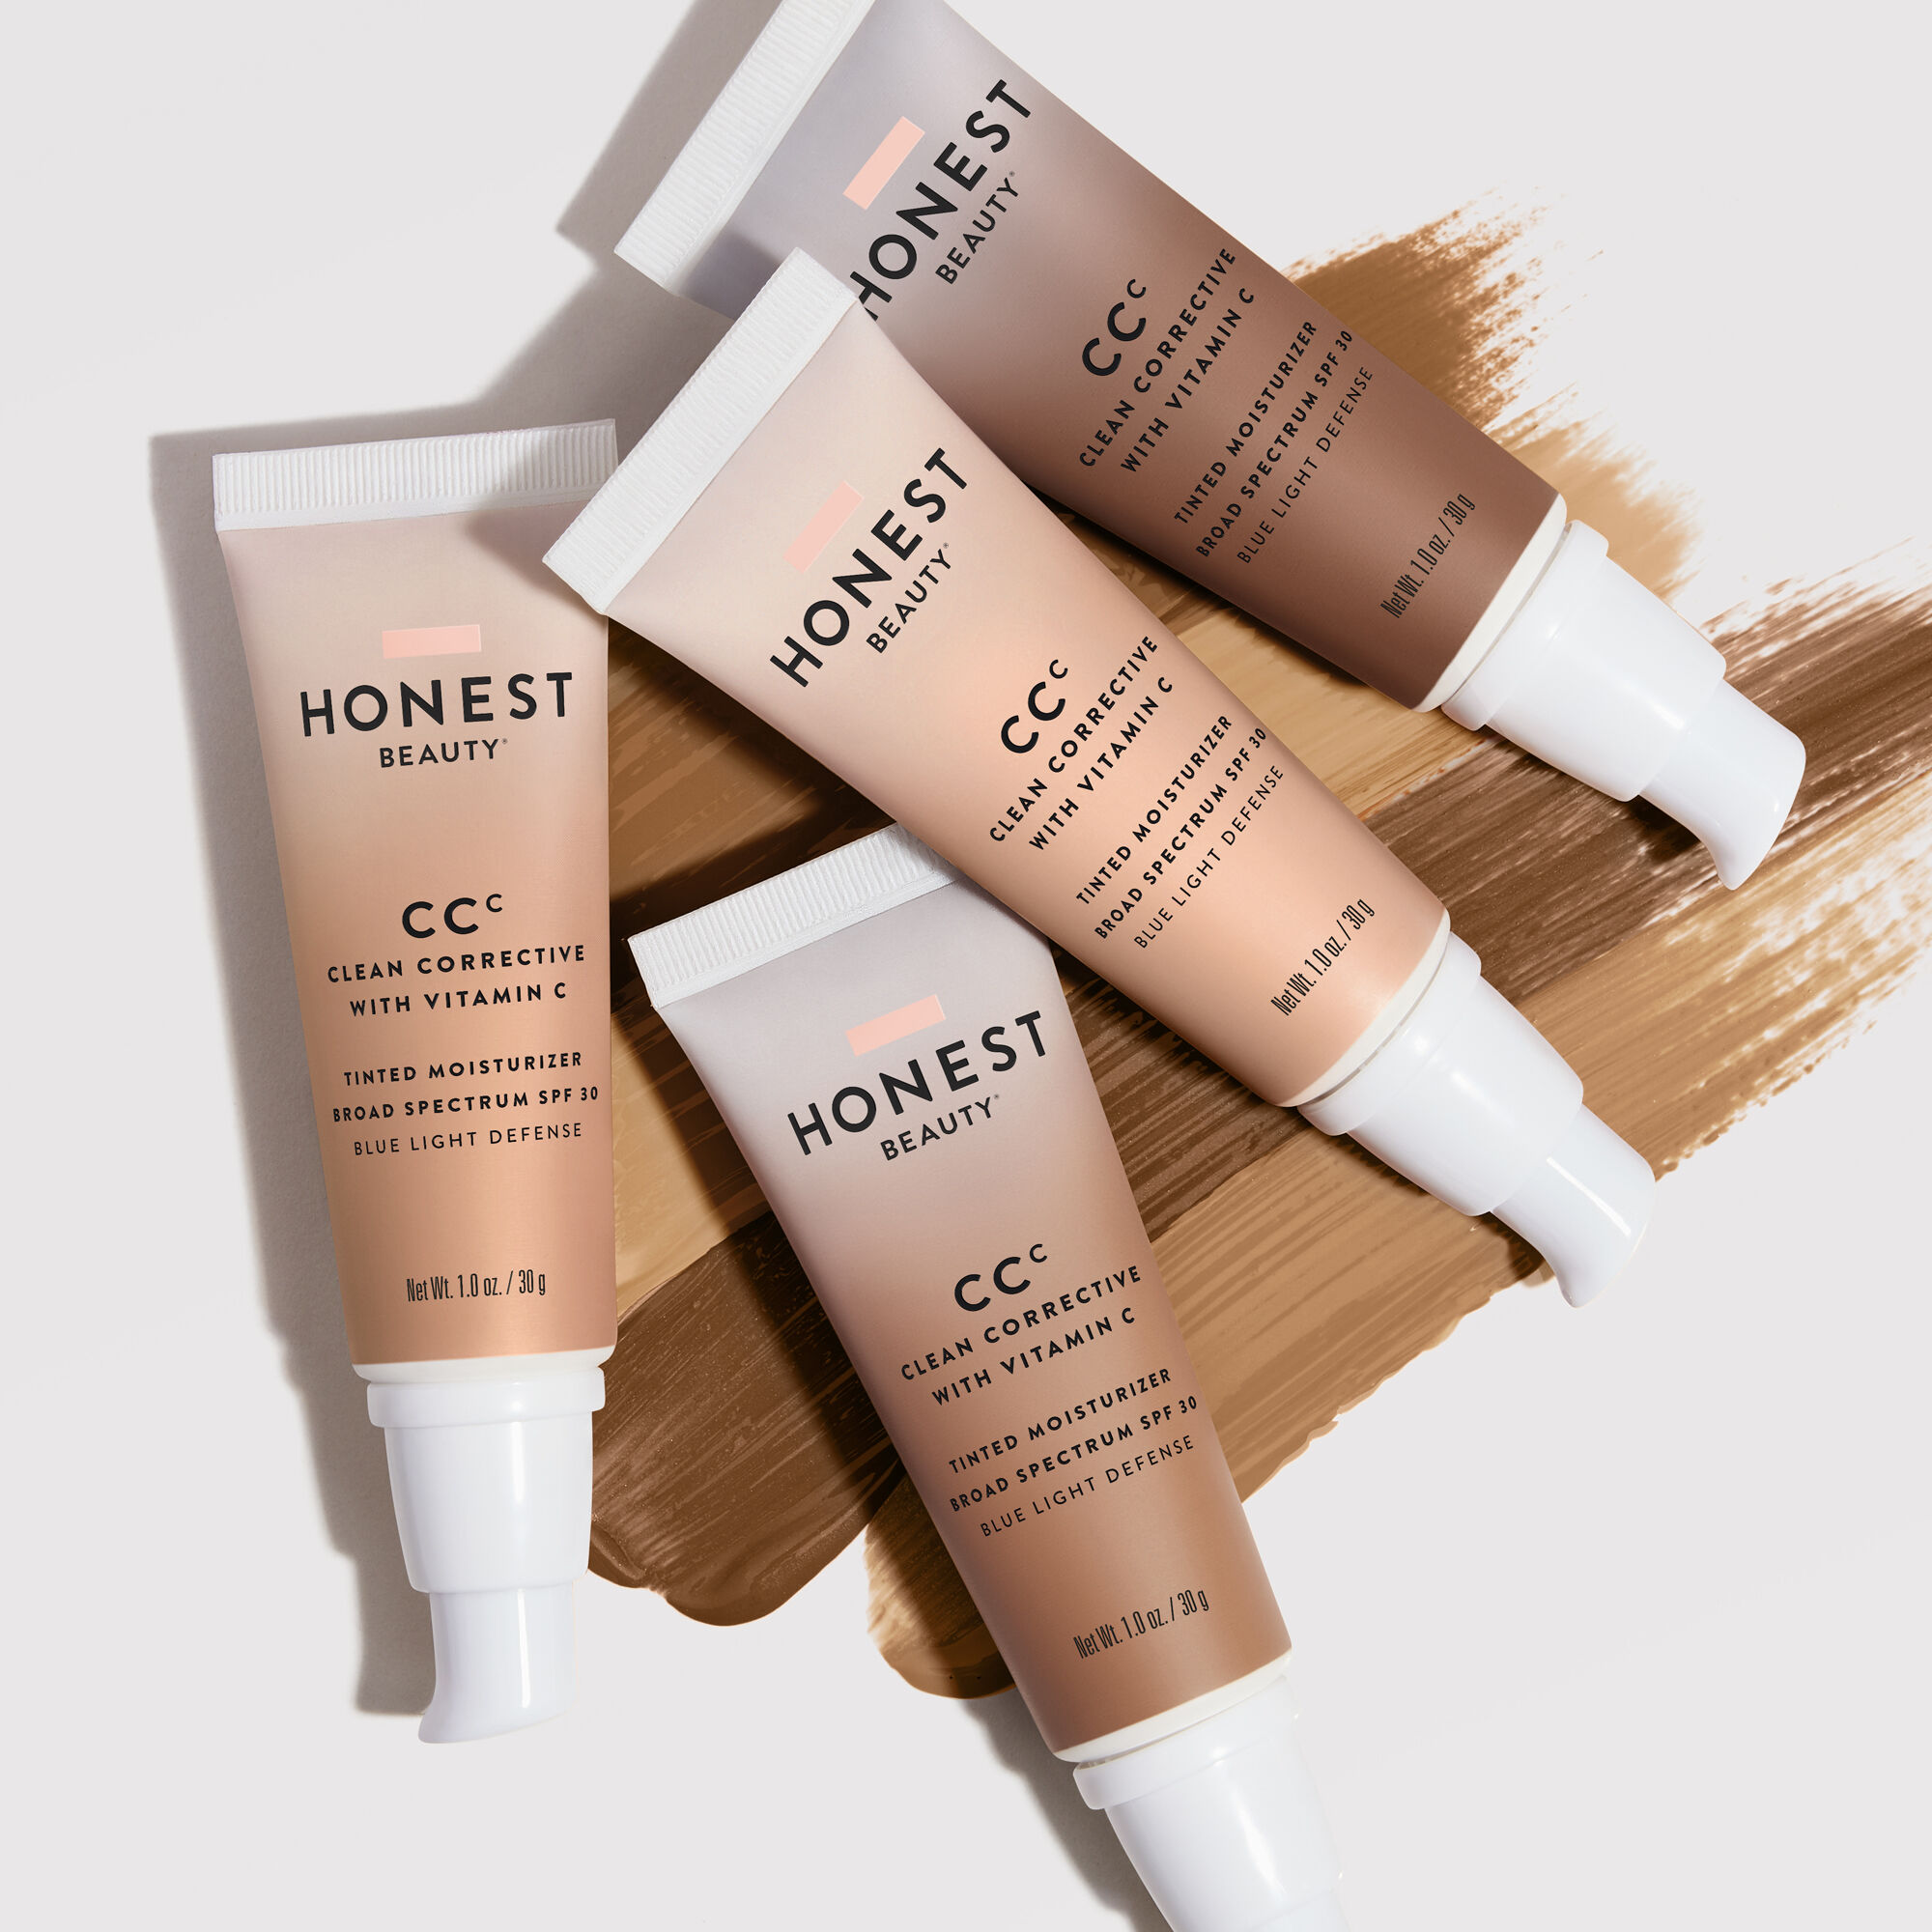 tinted moisturizers in various shades